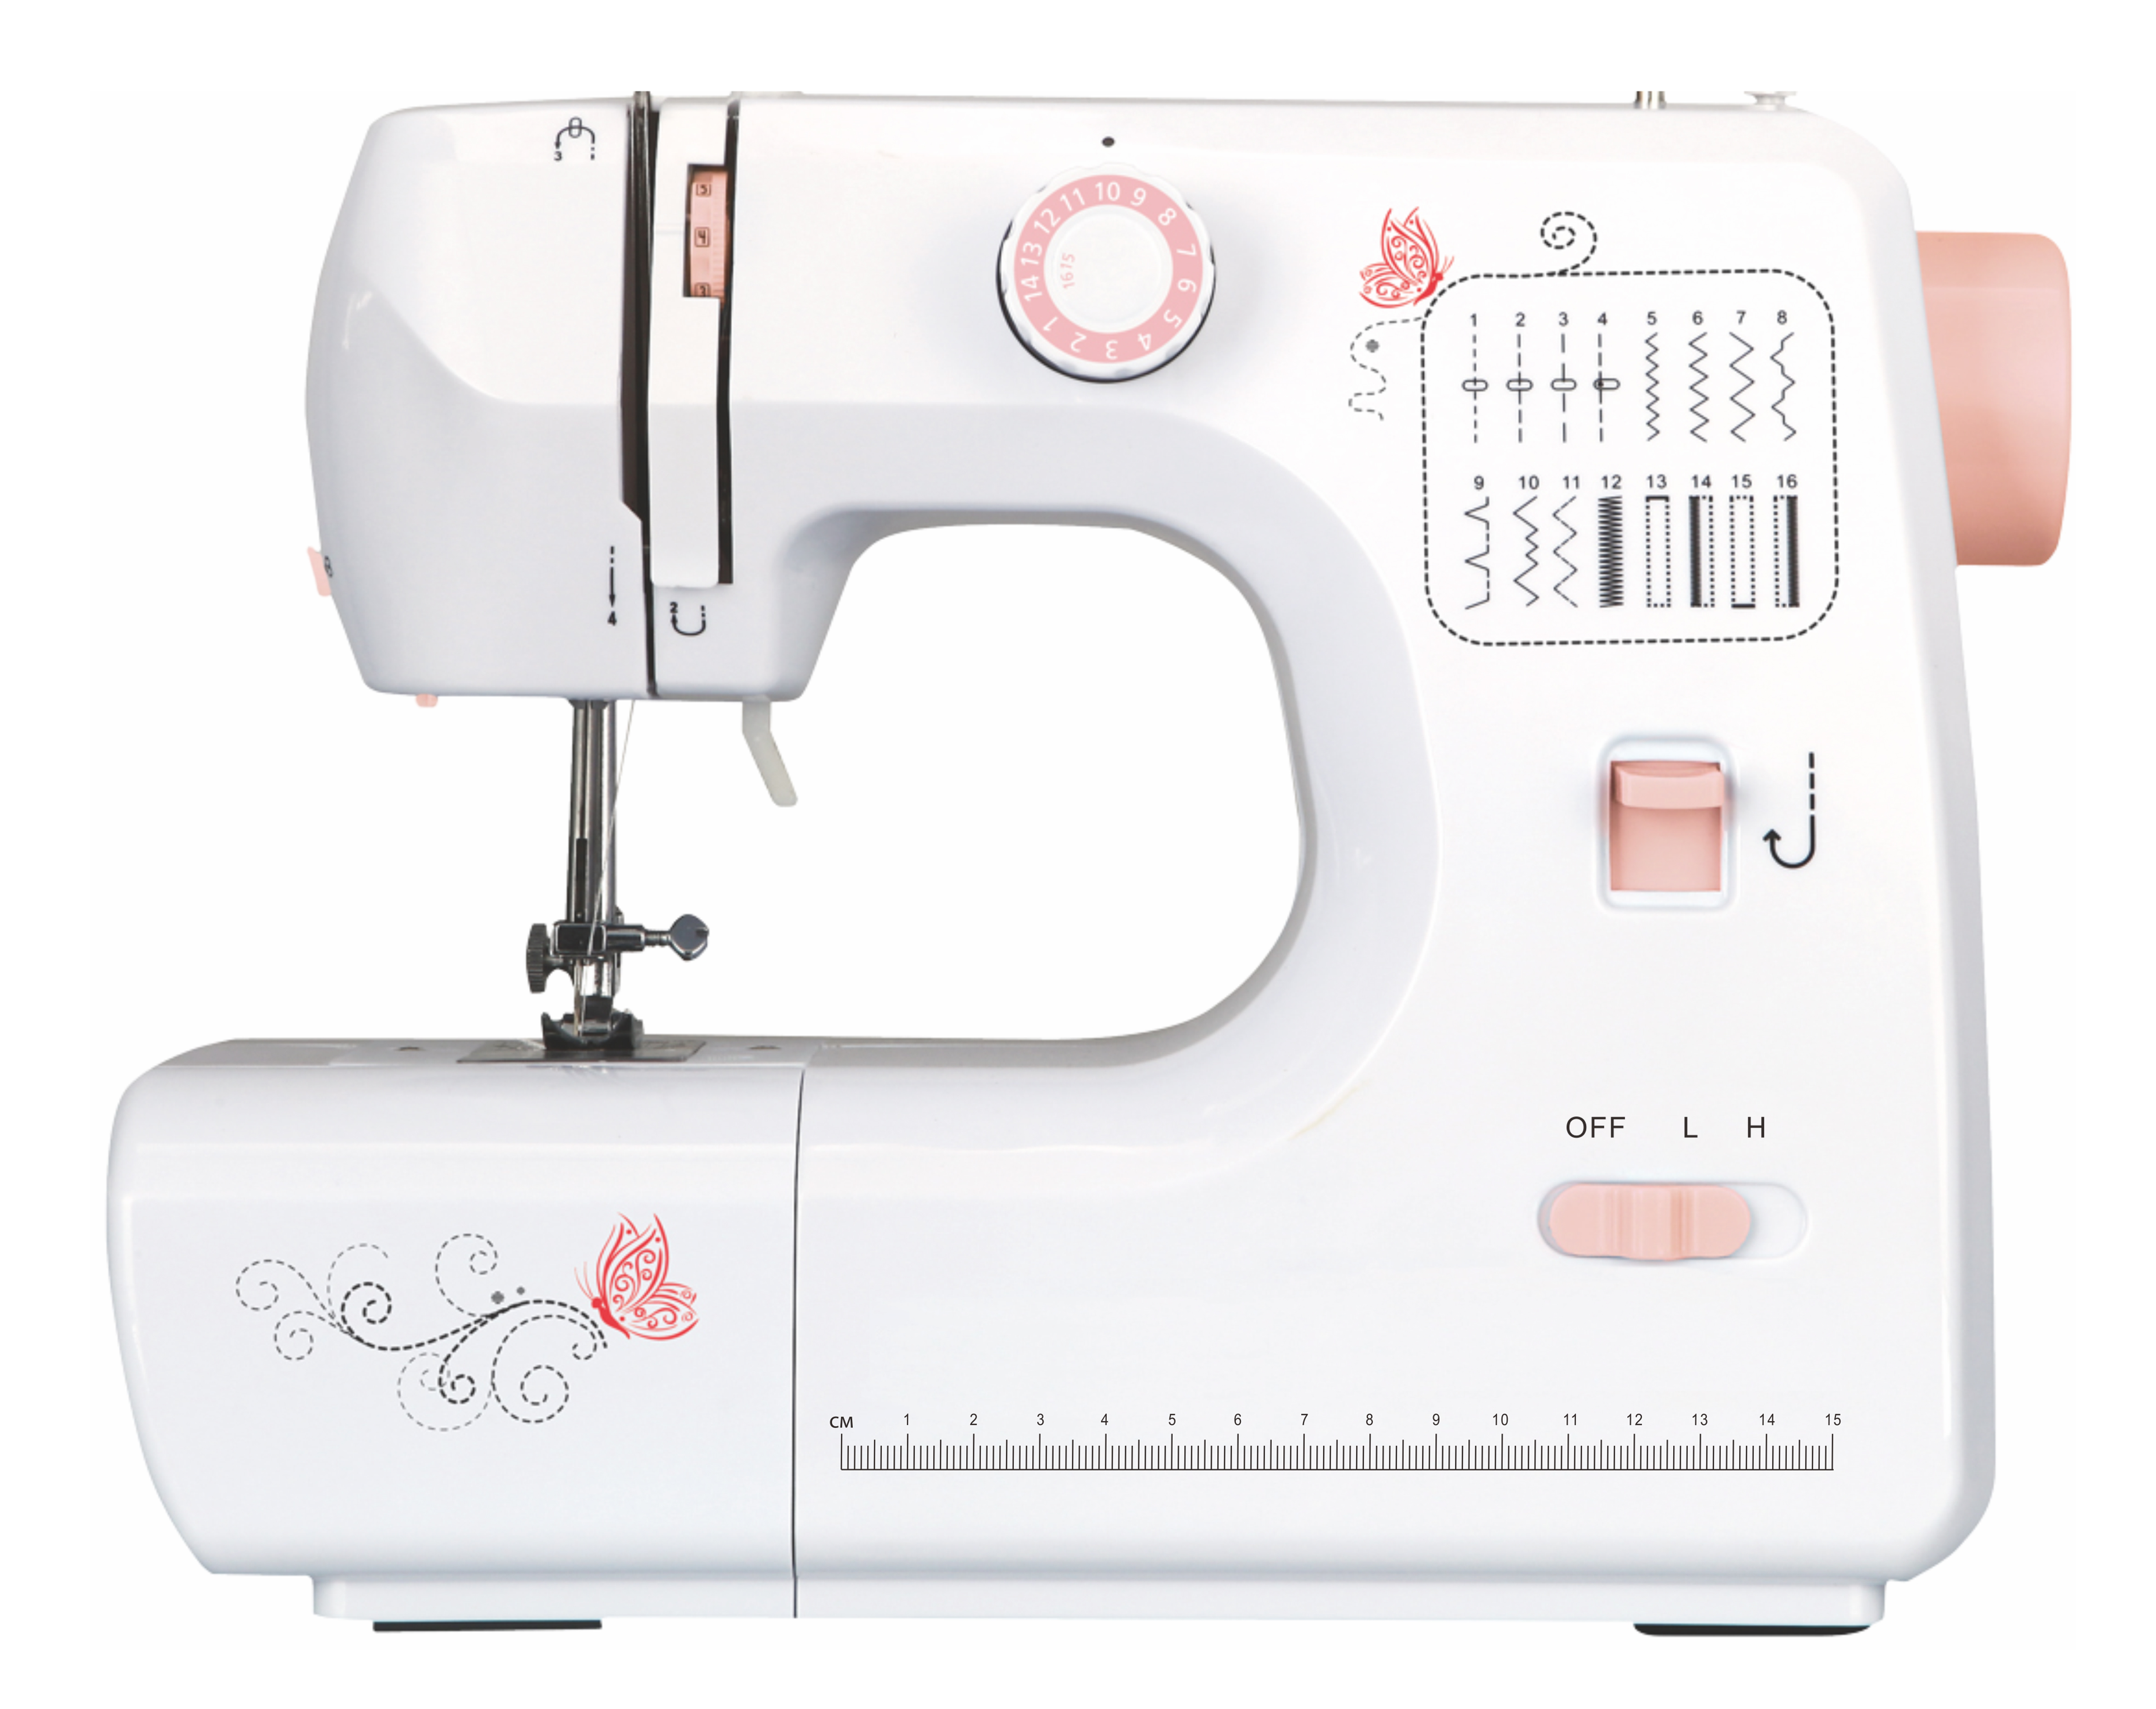 Deluxe Handheld Household Sewing Machine Fhsm-700-B